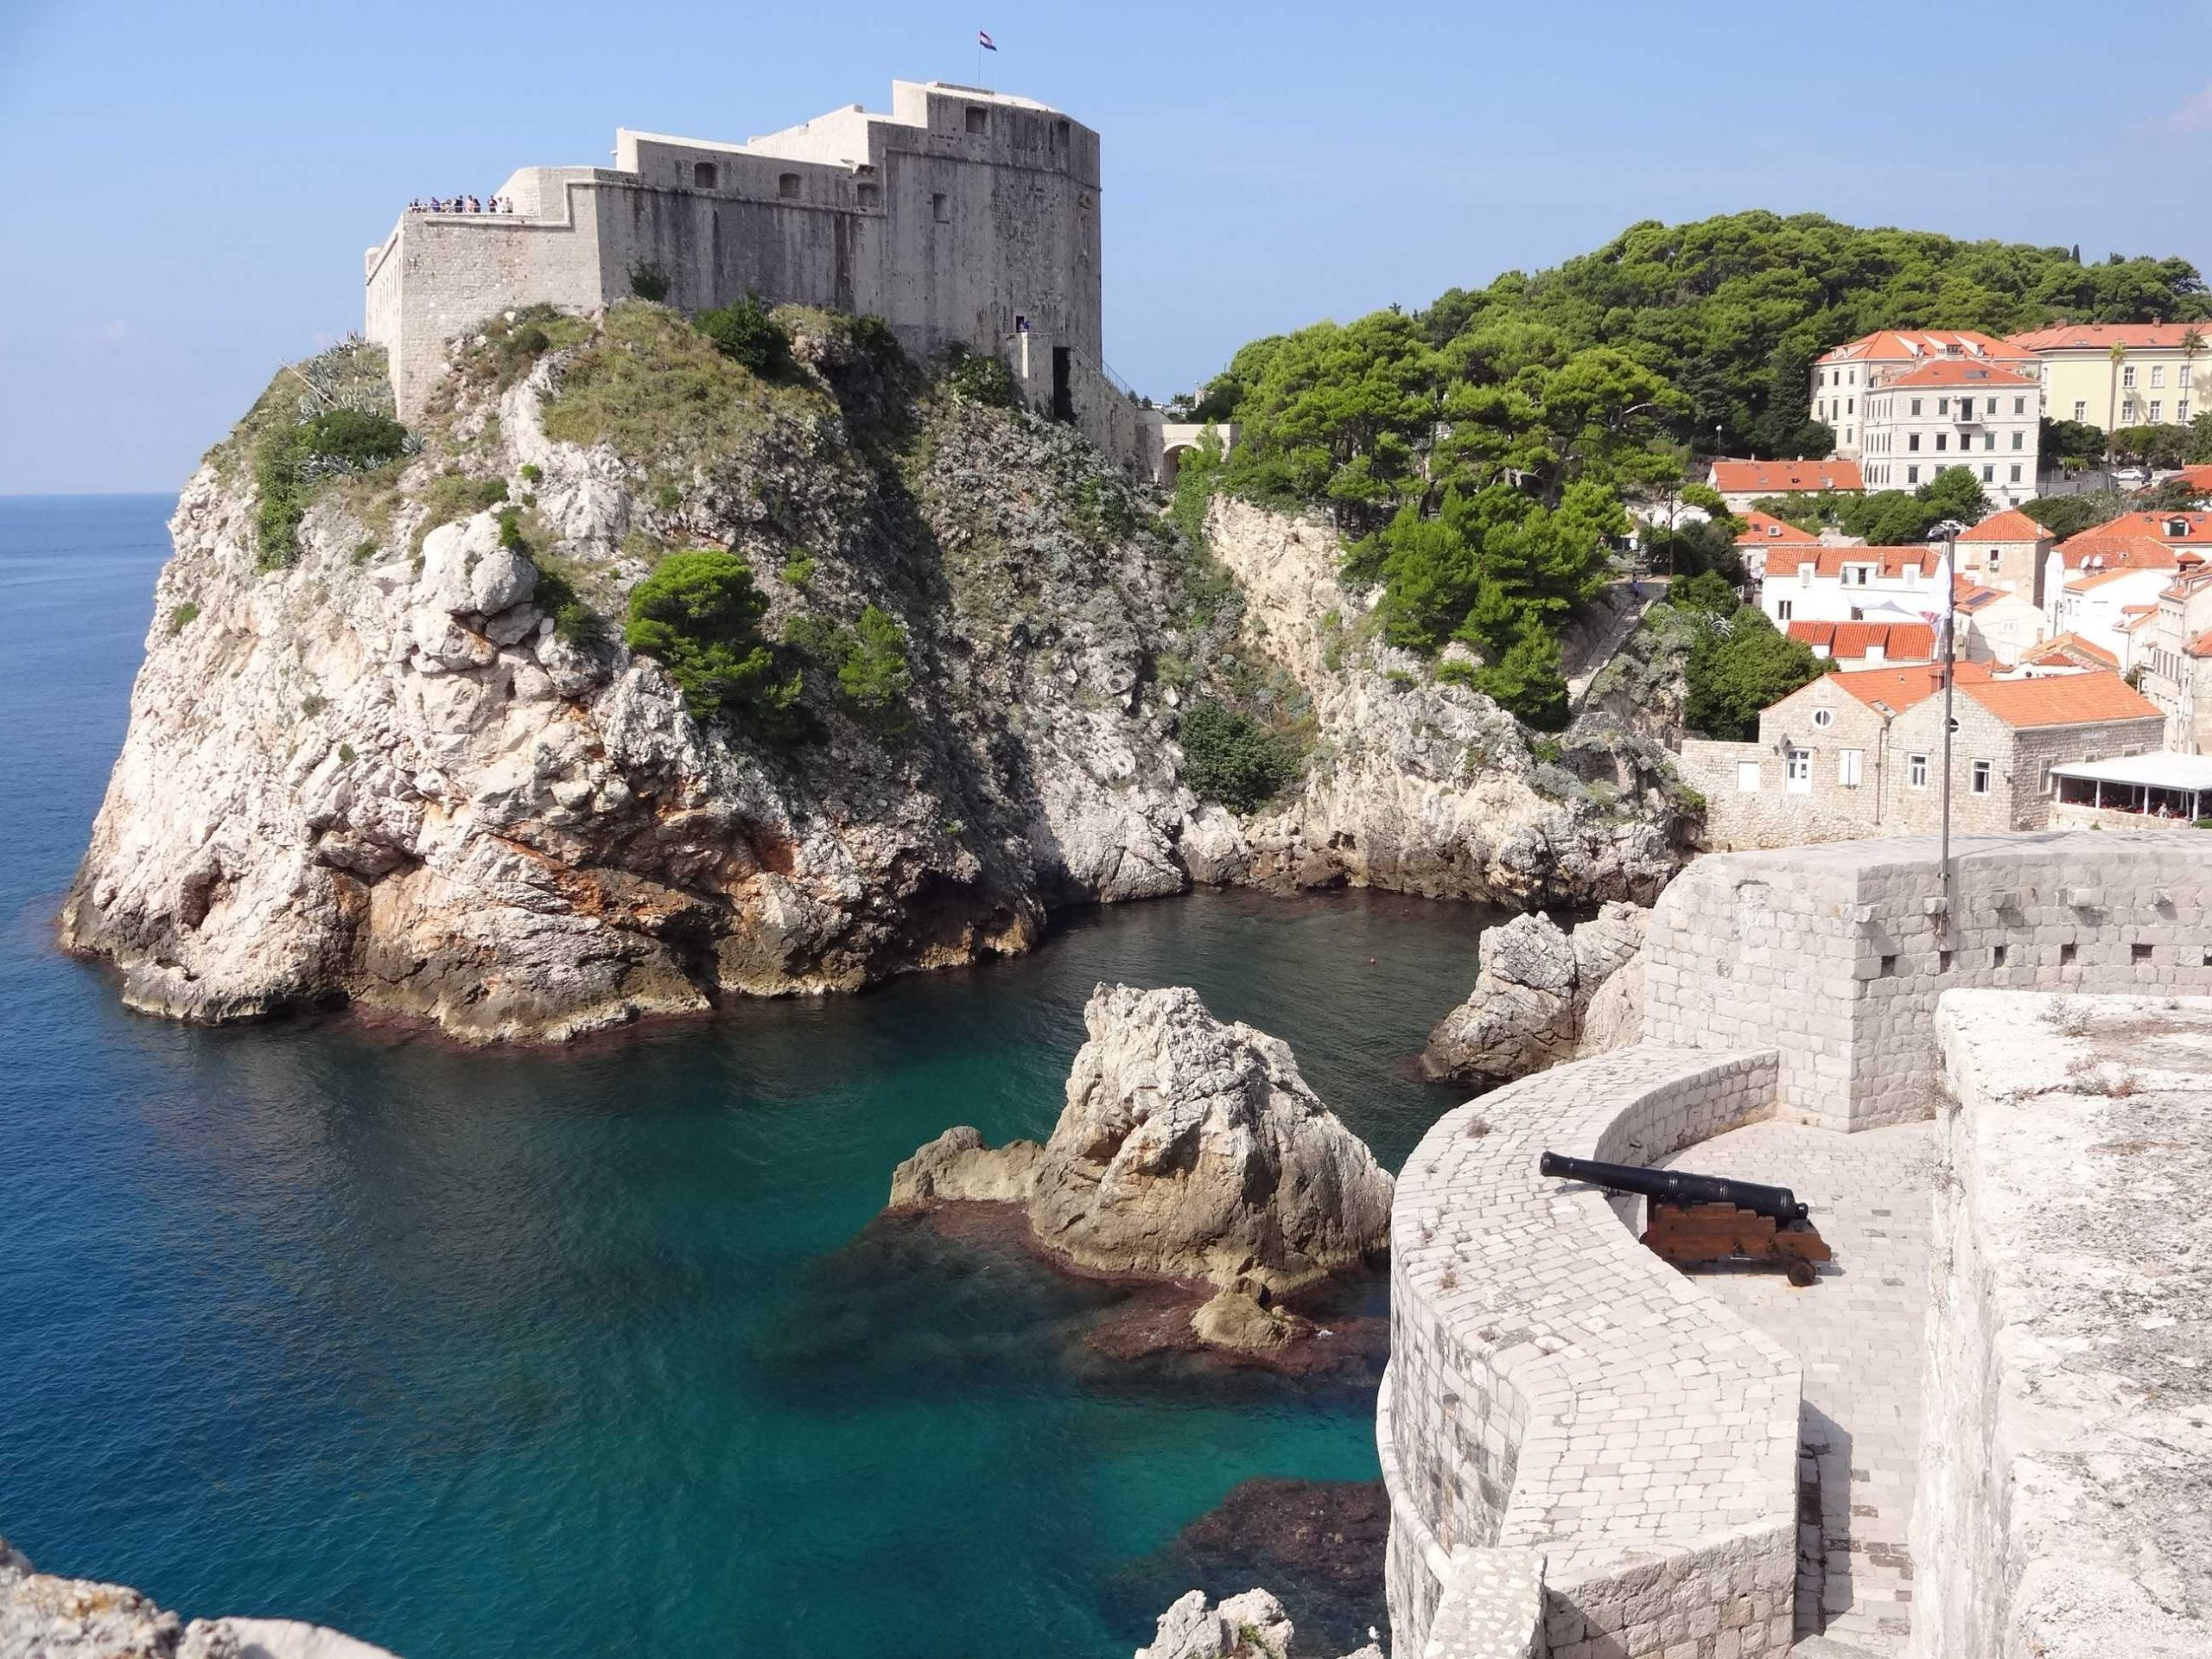 Travel guide to City Walls and Forts in Dubrovnik